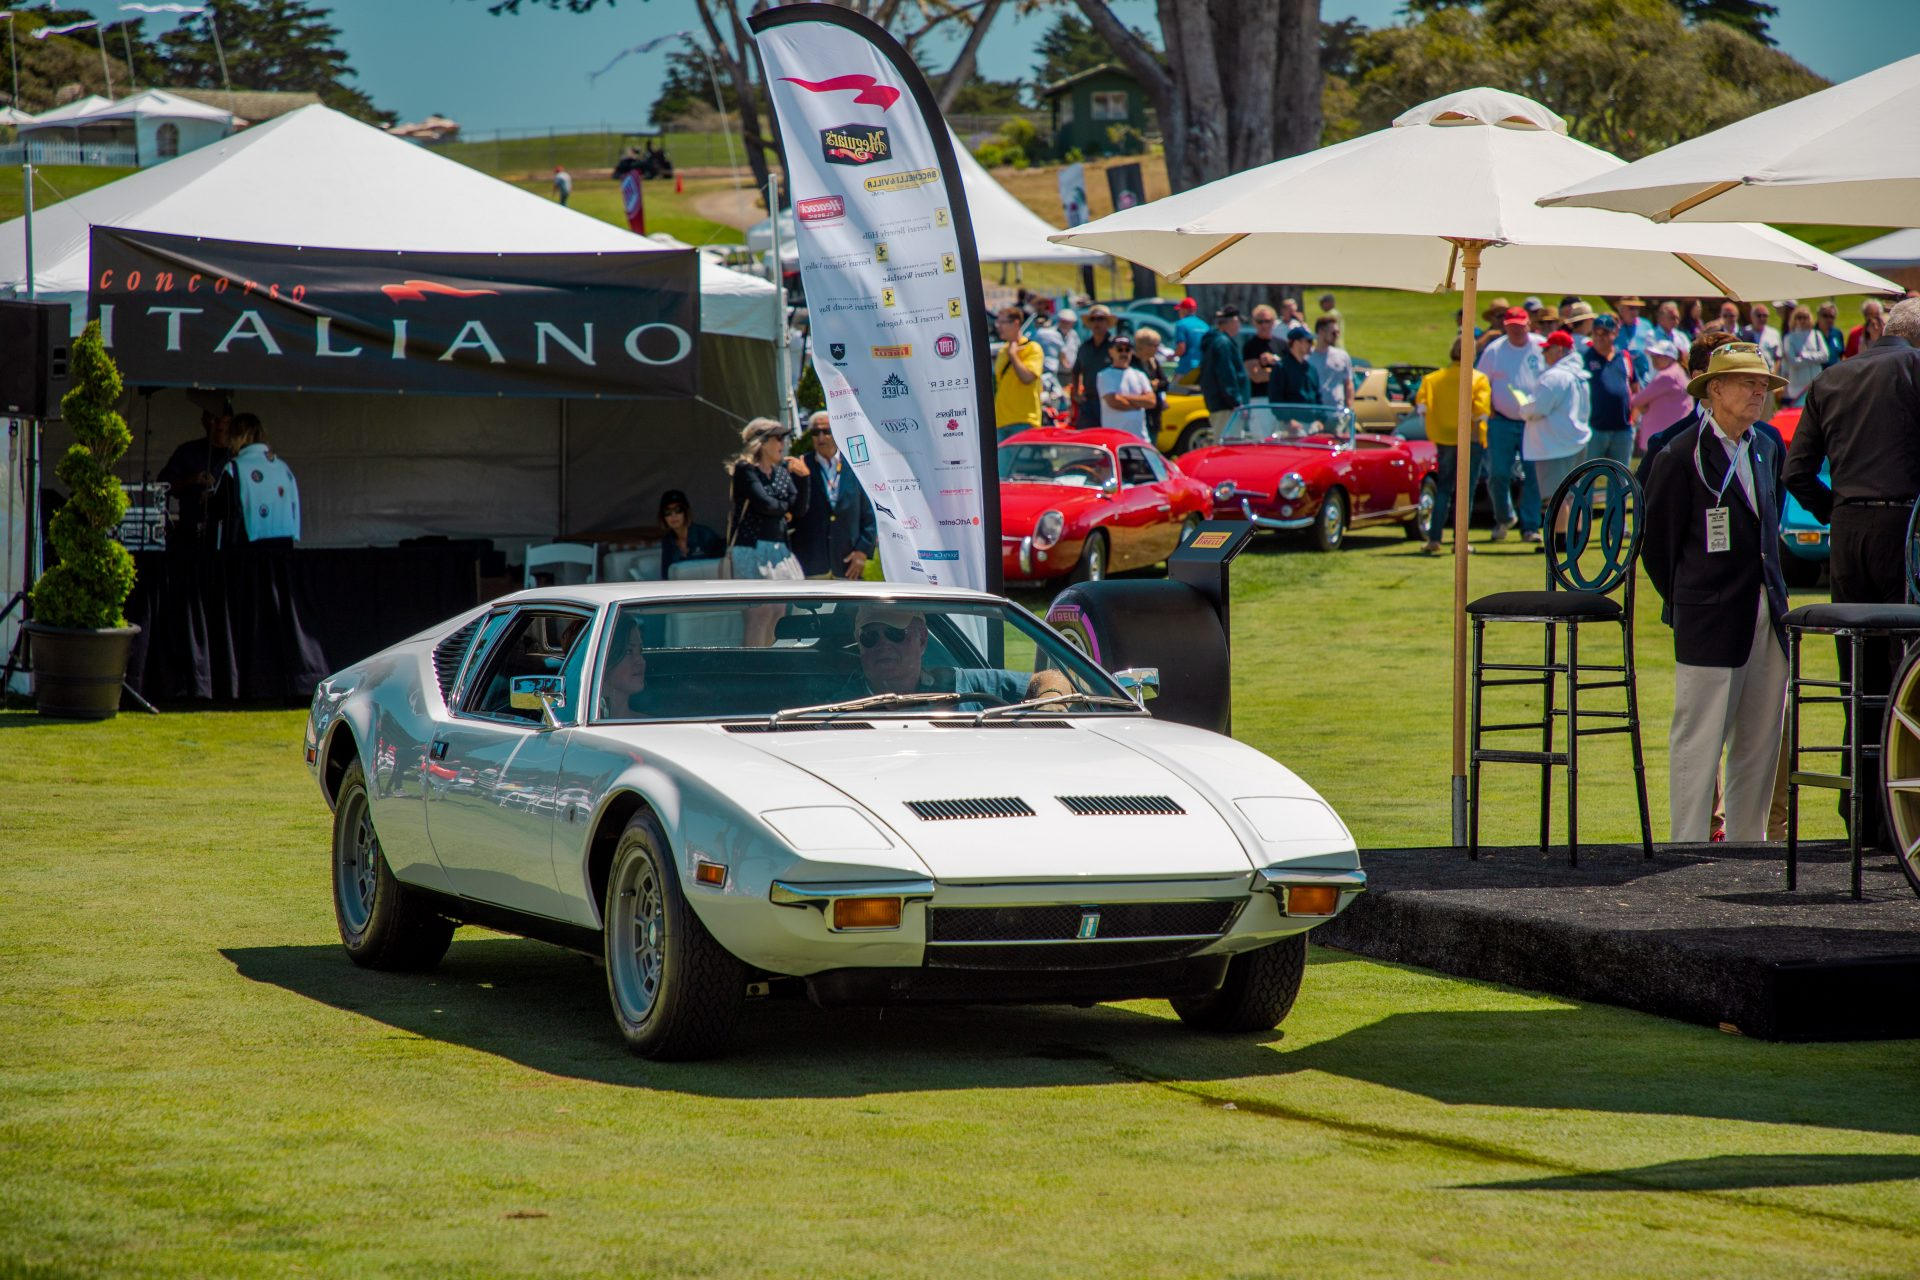 1st place DeTomaso: 1971 Pantera owned by Greg Mitchell from Coos Bay, OR